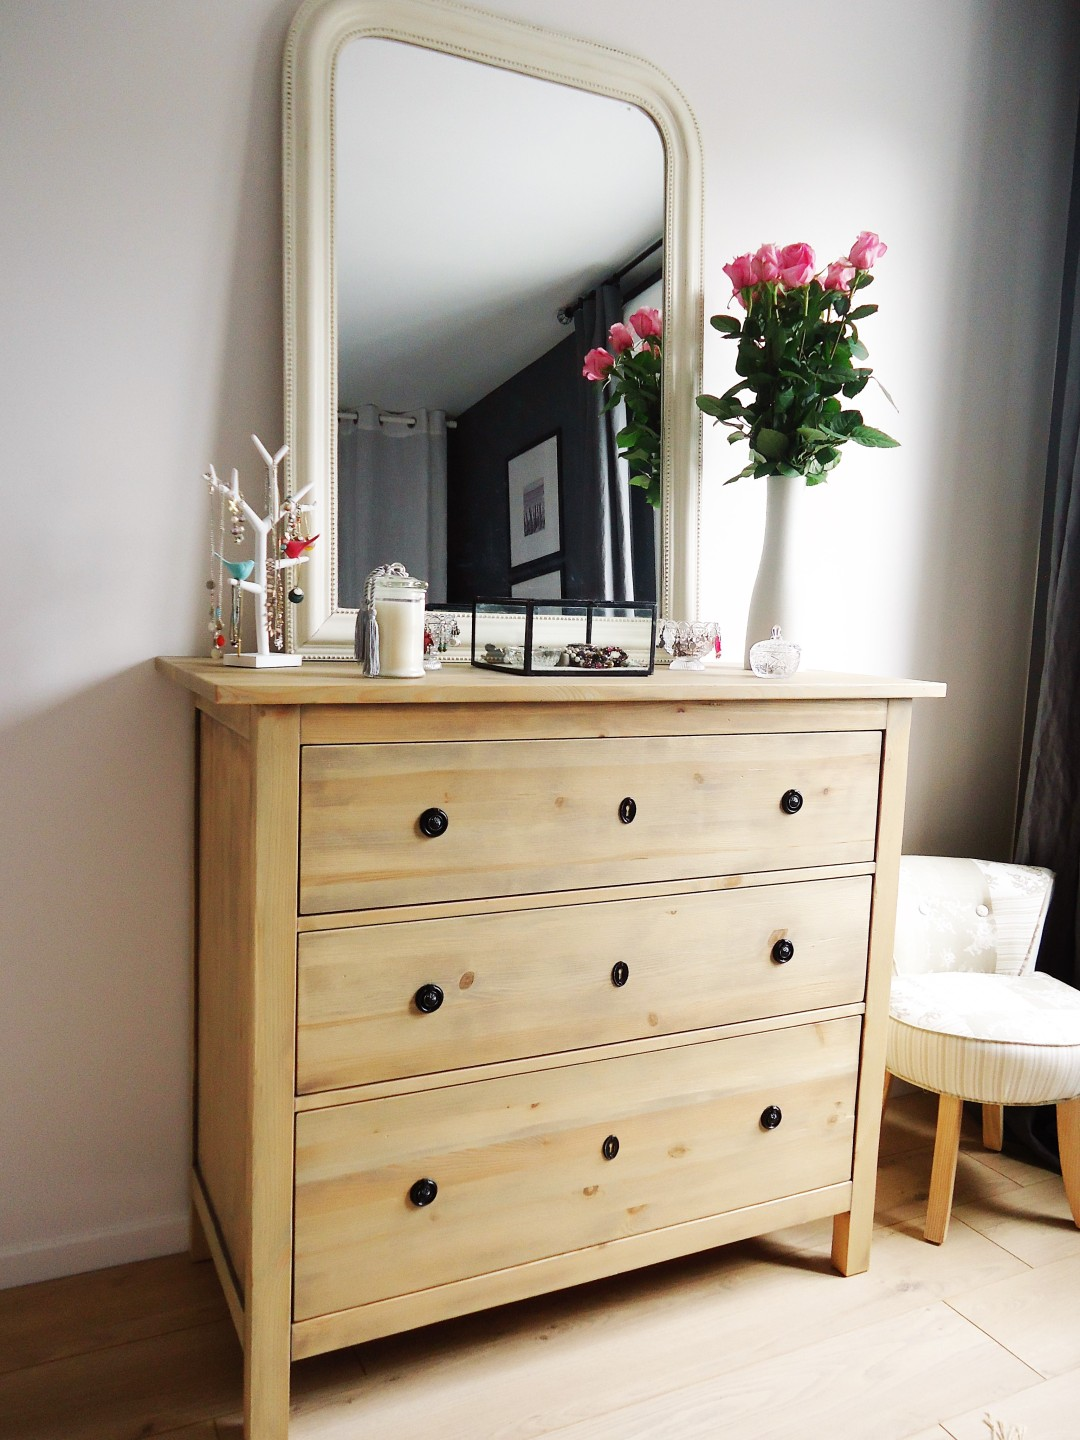 Une Nouvelle Finition Pour Ma Commode Ikea Home By Marie